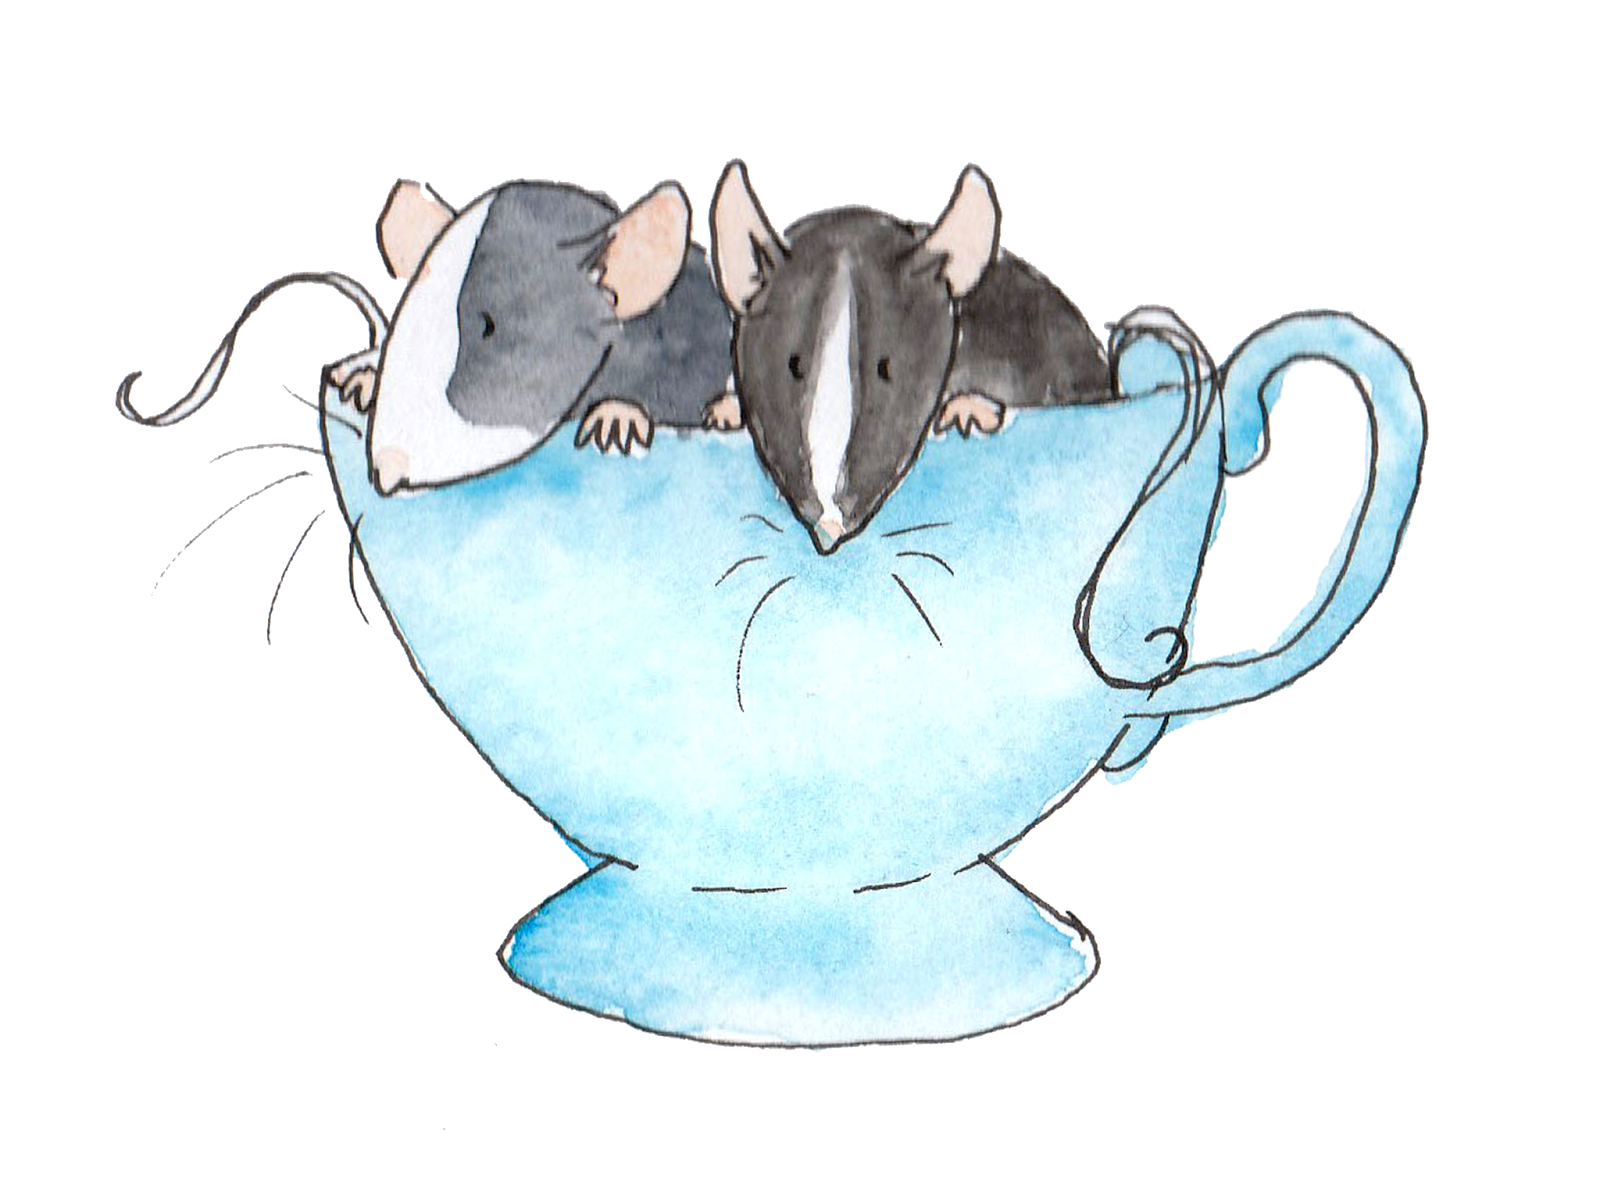 Clipart rat stressed. Silly badger works ratty